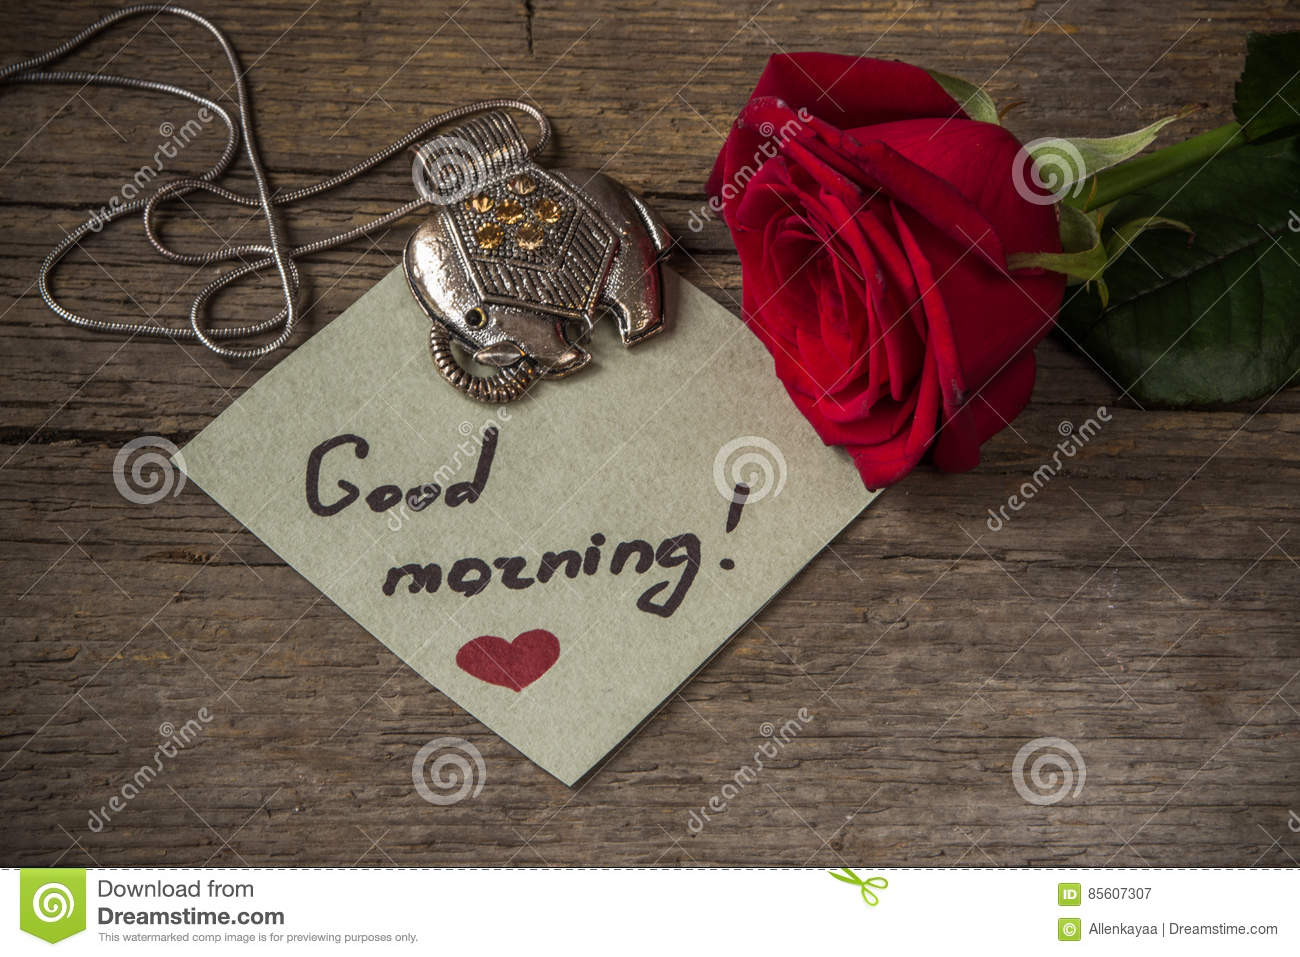 good morning text on a paper red rose flower and decoration el